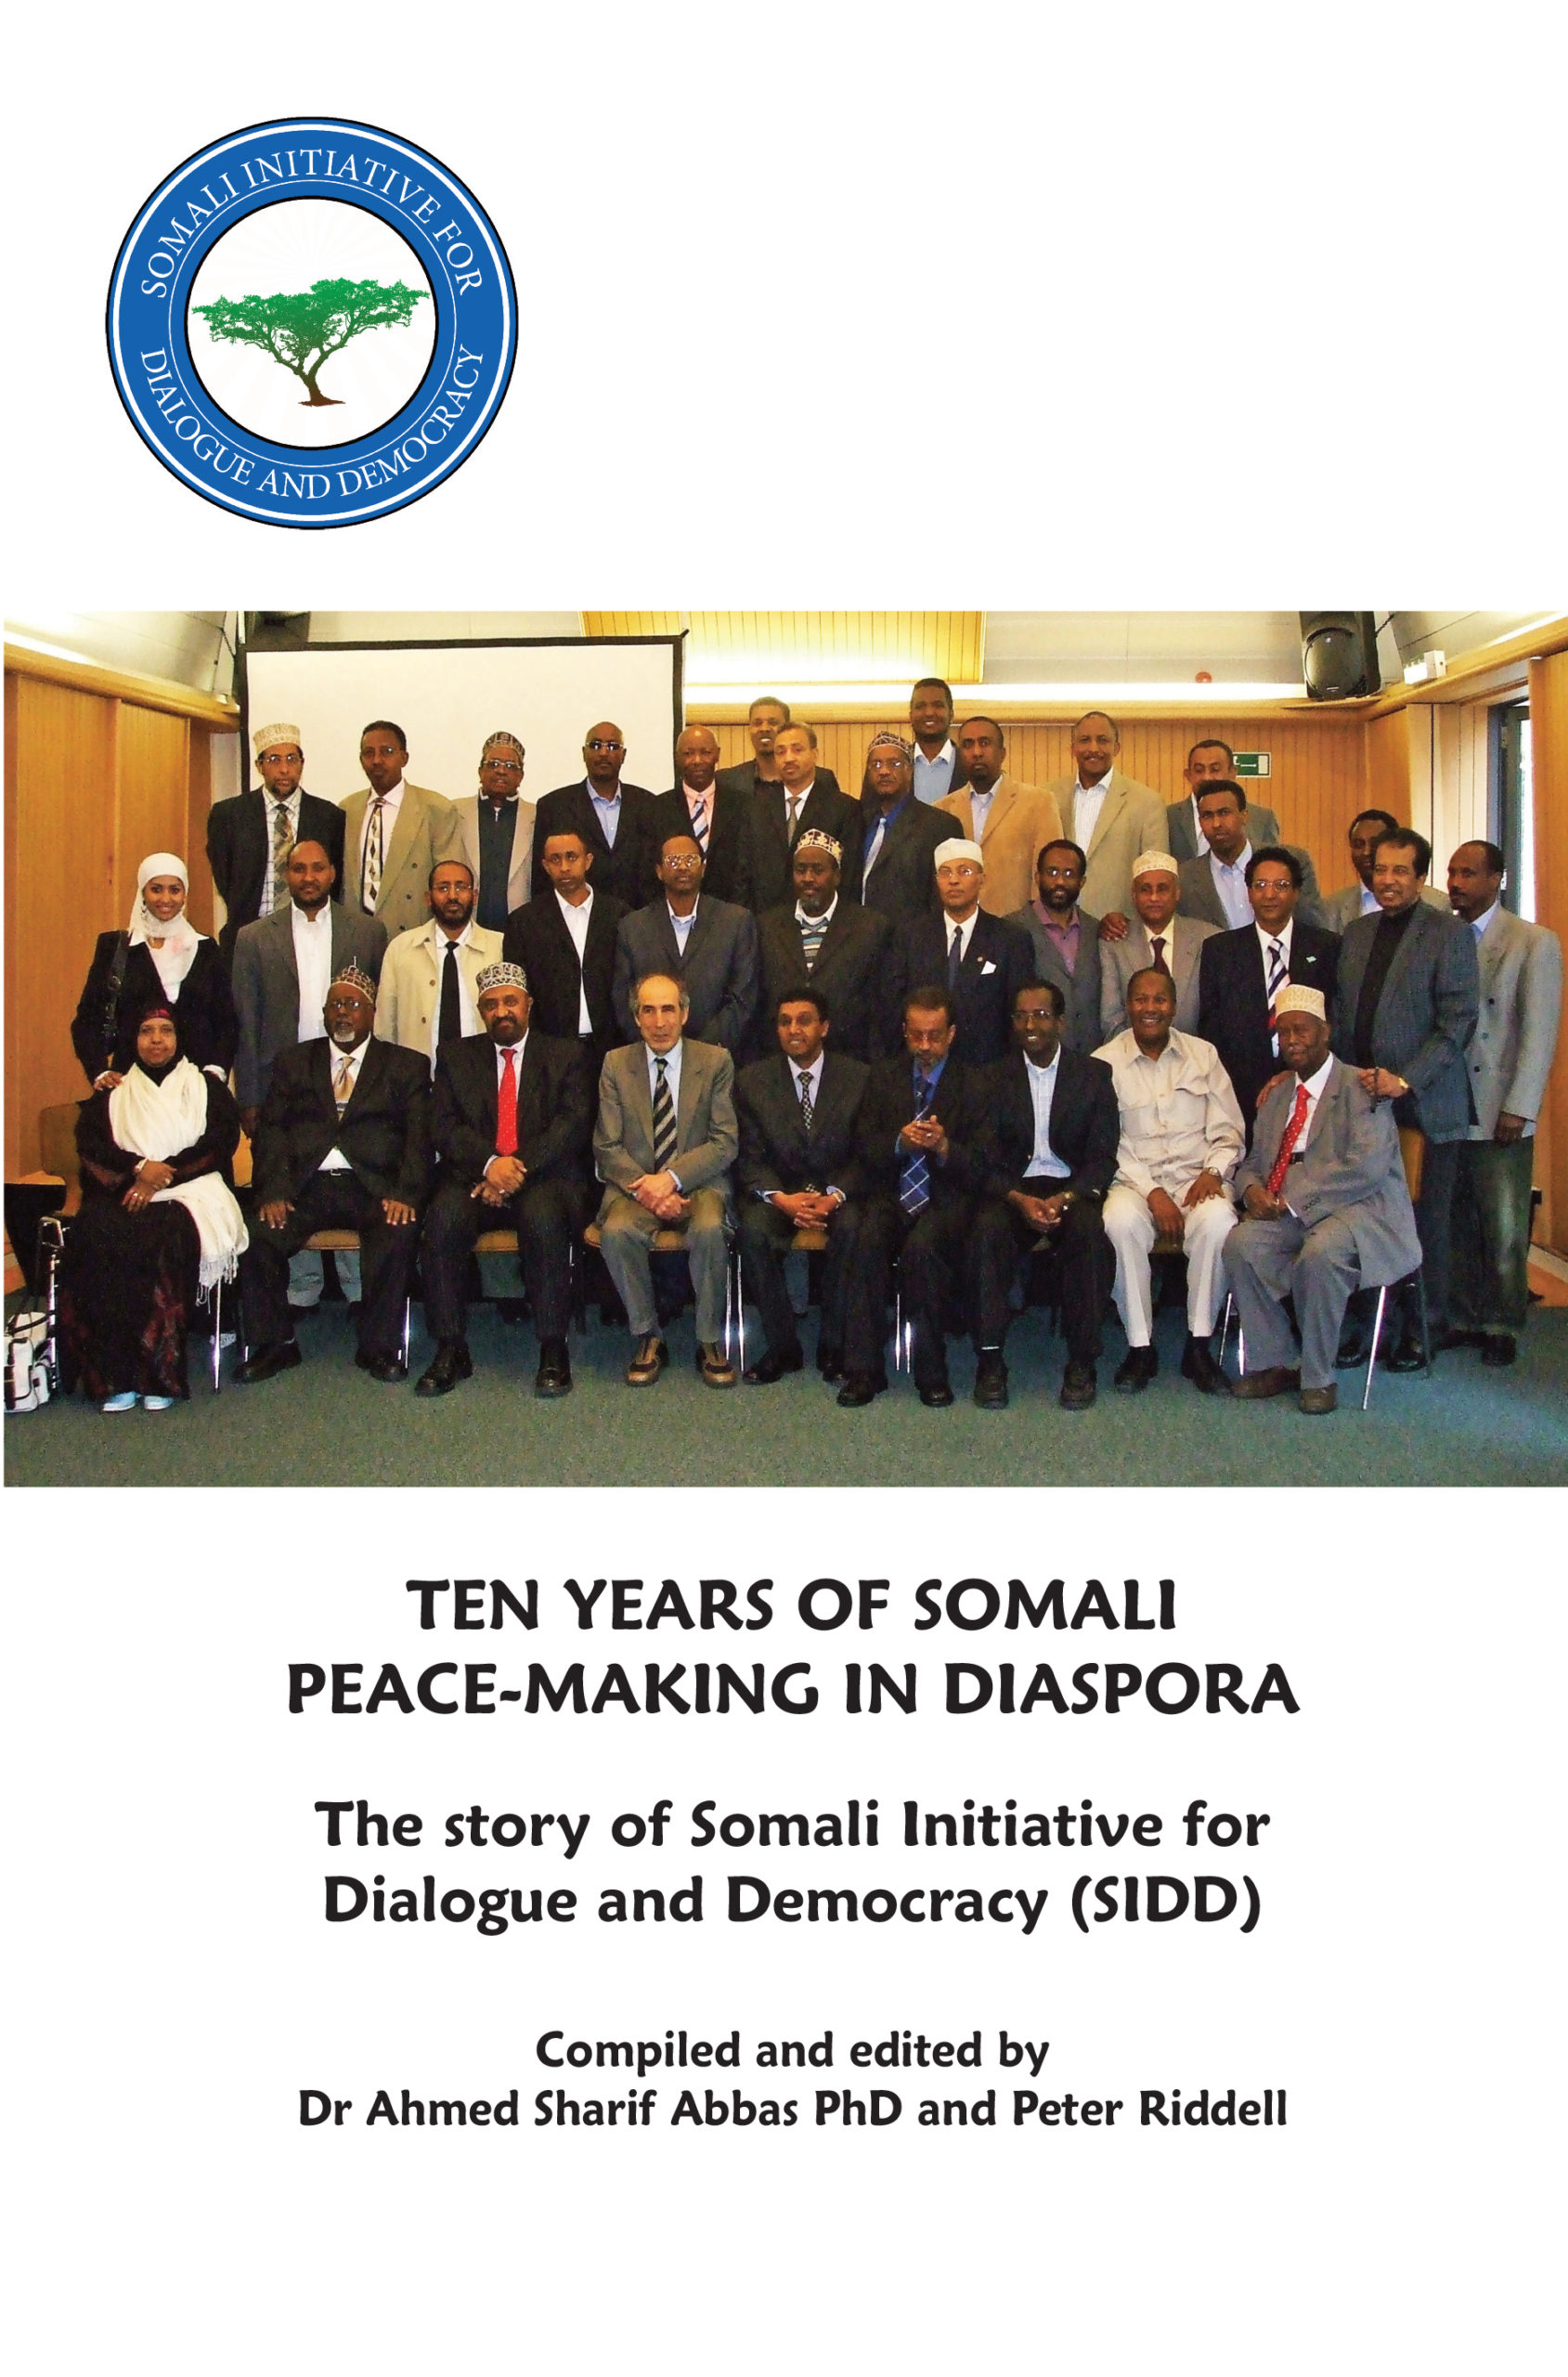 Ten years of Somali Peace-making in Disapora